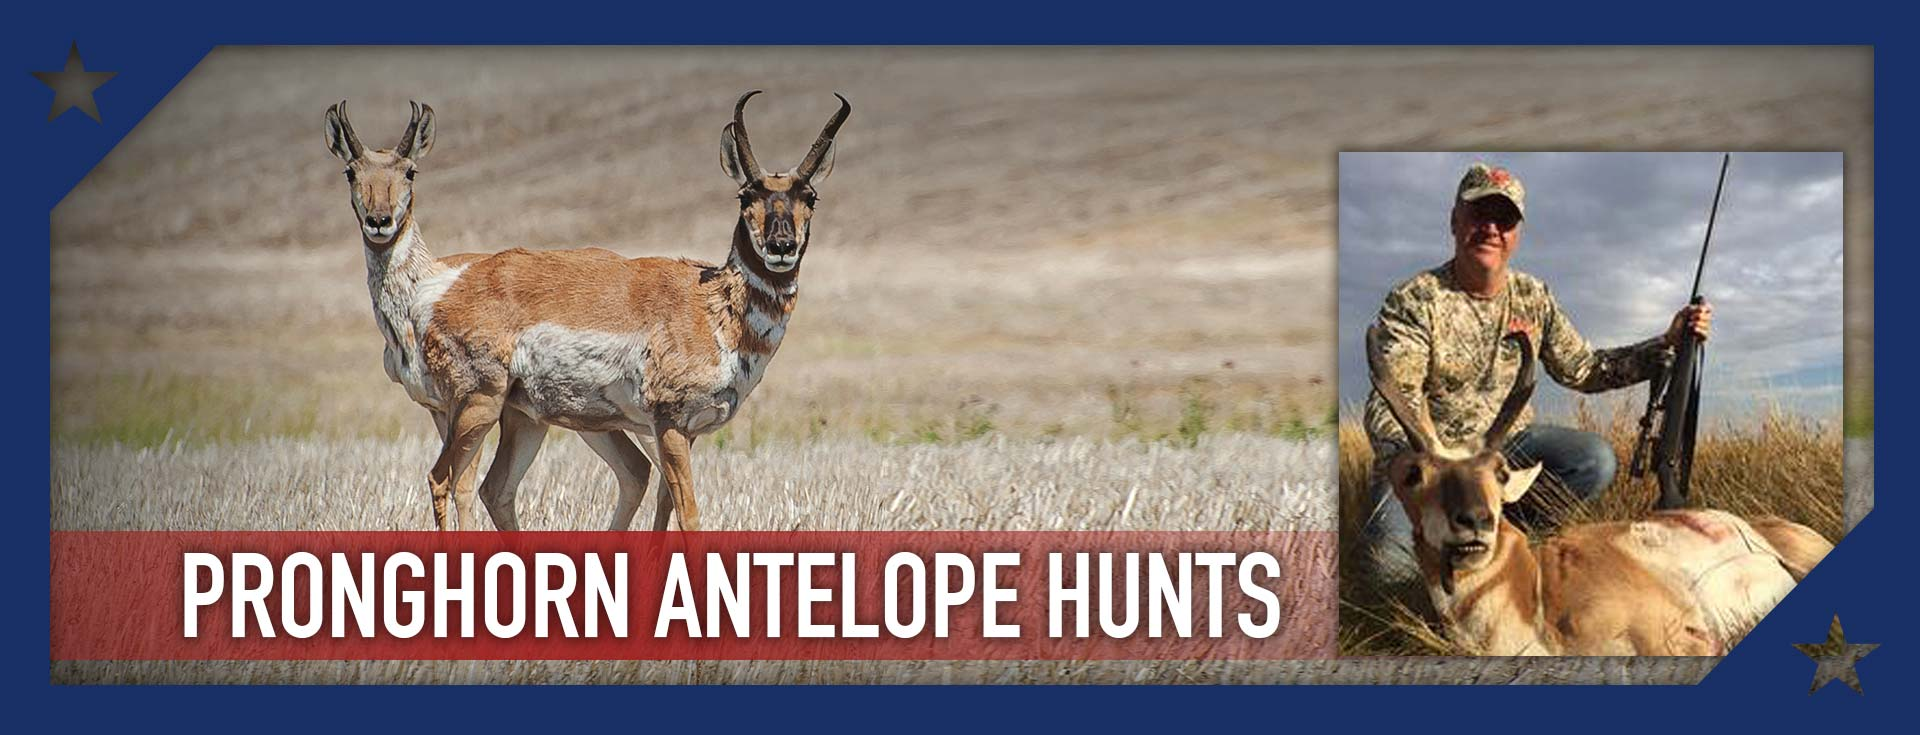 Trophy Pronghorn Antelope Hunts